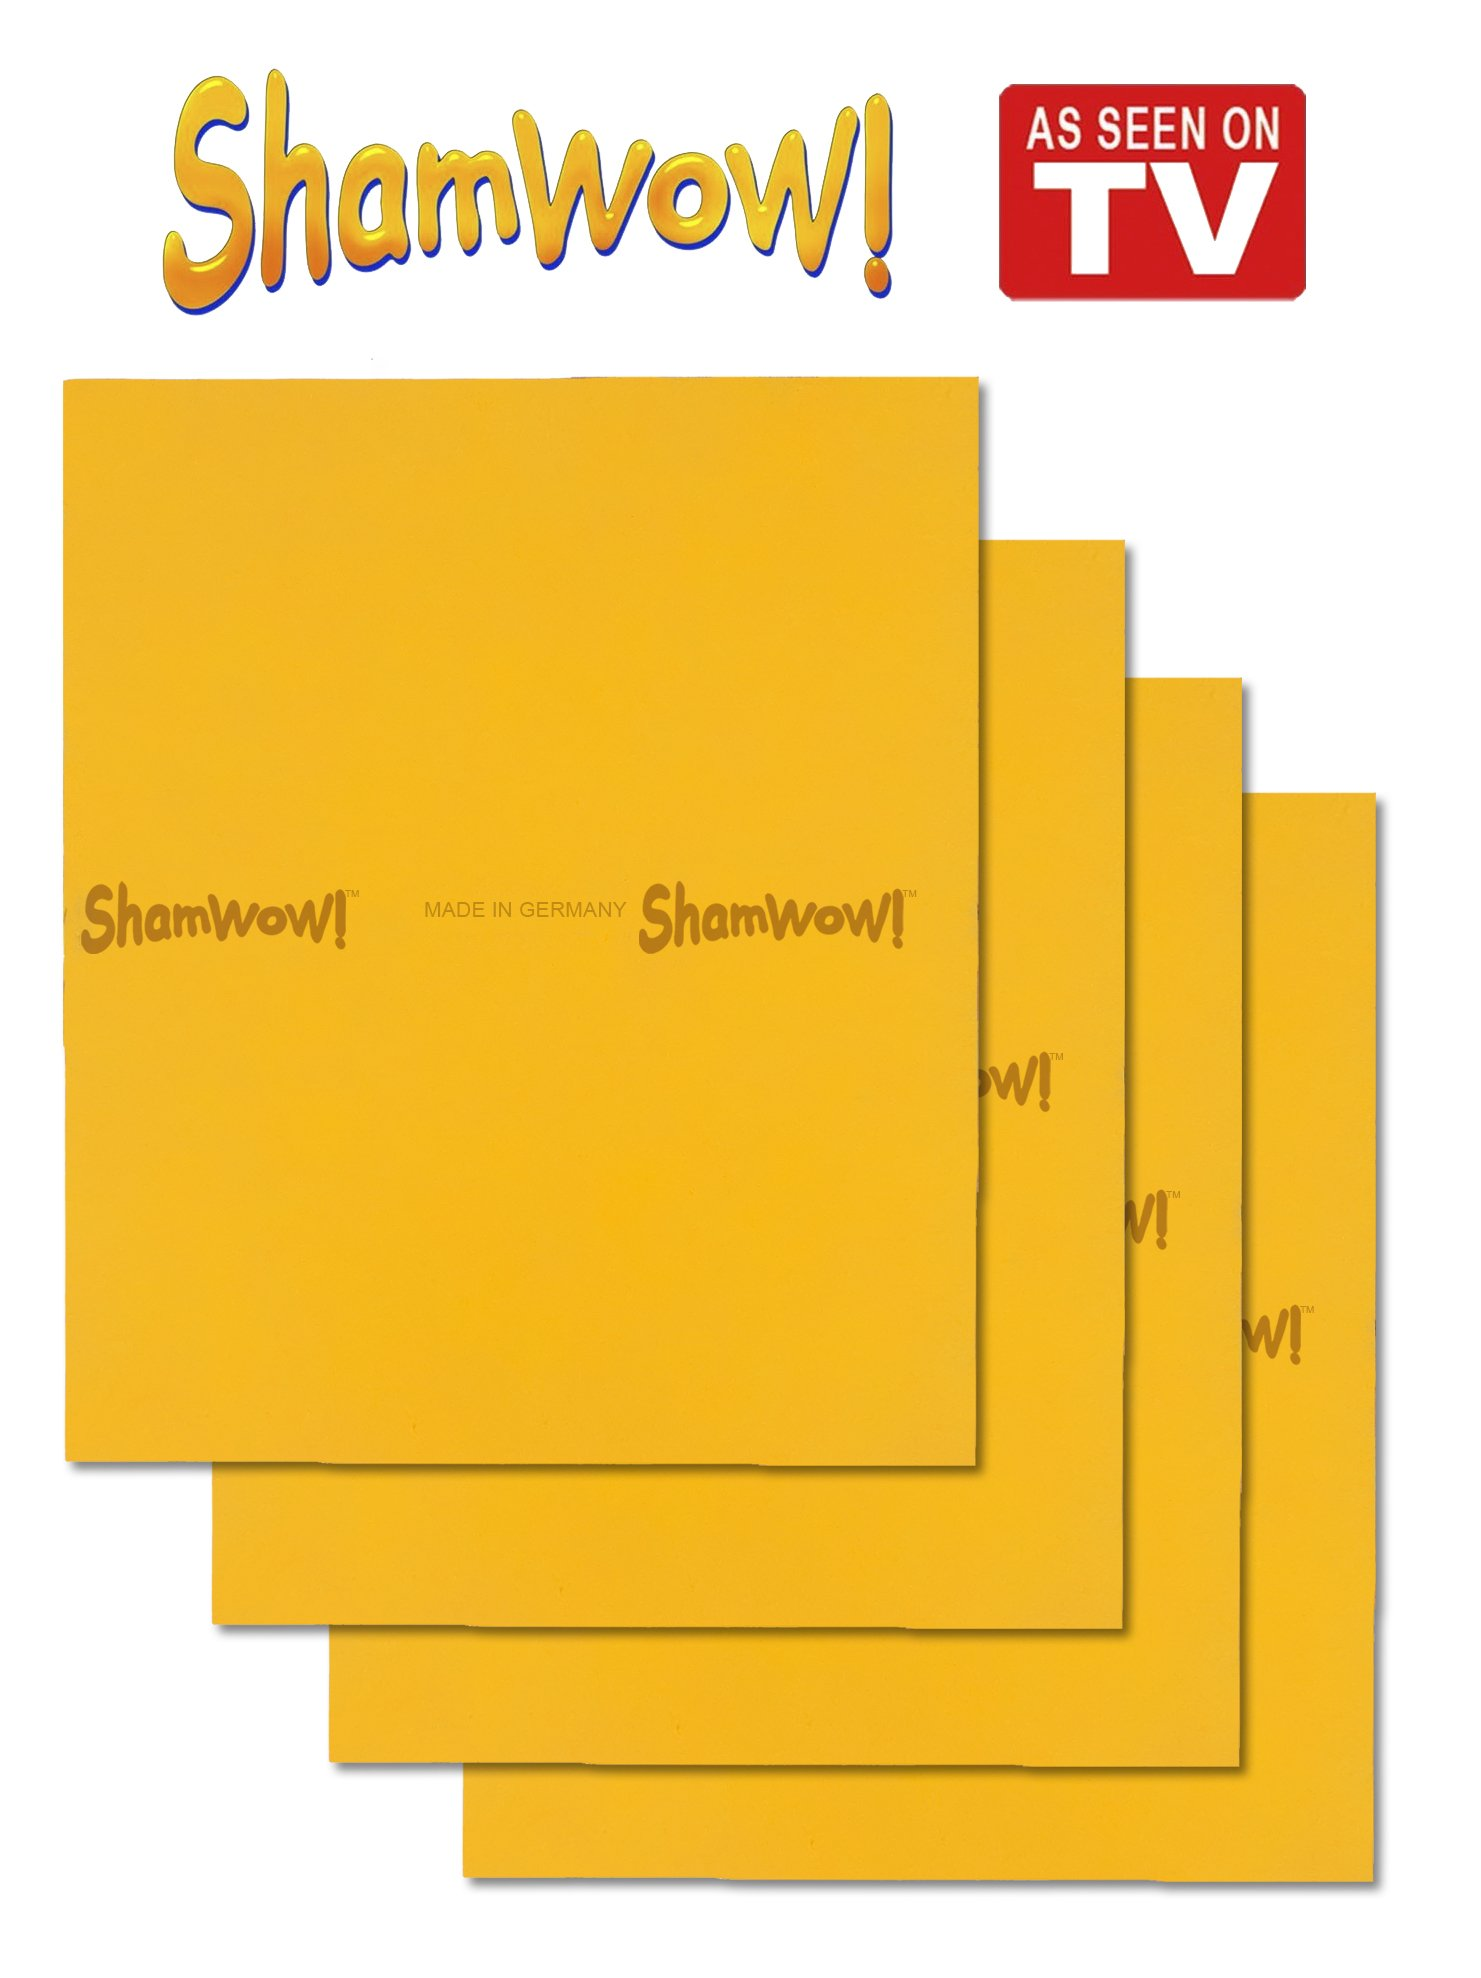 The Original Shamwow - Super Absorbent Multi-purpose Cleaning Shammy (Chamois) Towel Cloth, Machine Washable, Will Not Scratch, Orange (4 Pack)